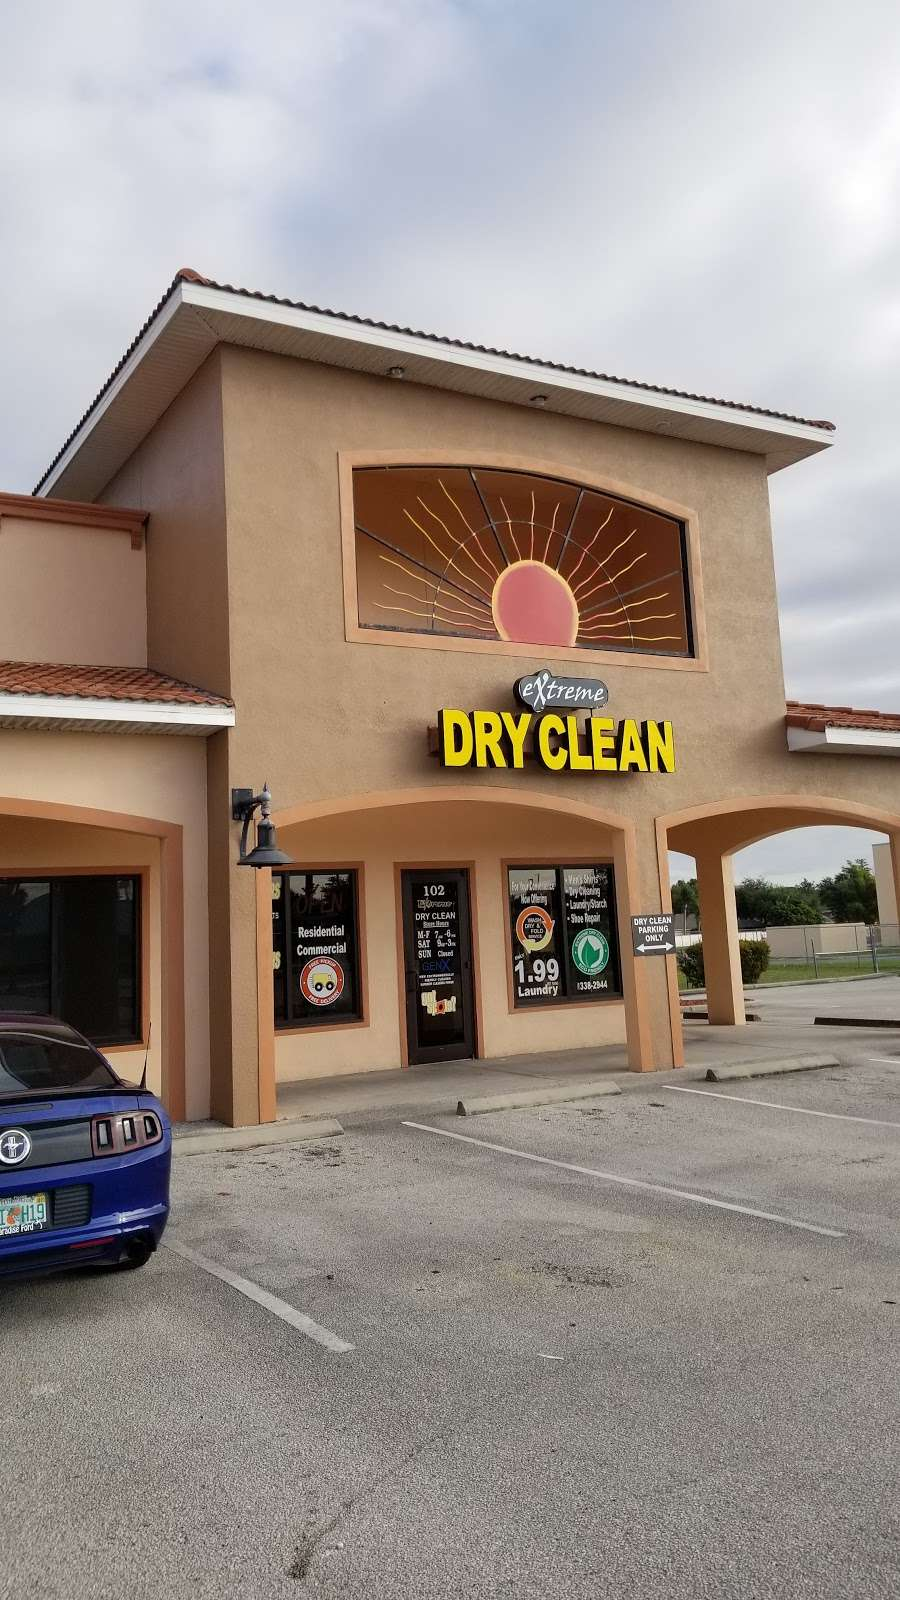 Extreme Dry Clean - laundry  | Photo 6 of 7 | Address: 634 Barnes Blvd #102, Rockledge, FL 32955, USA | Phone: (321) 338-2944